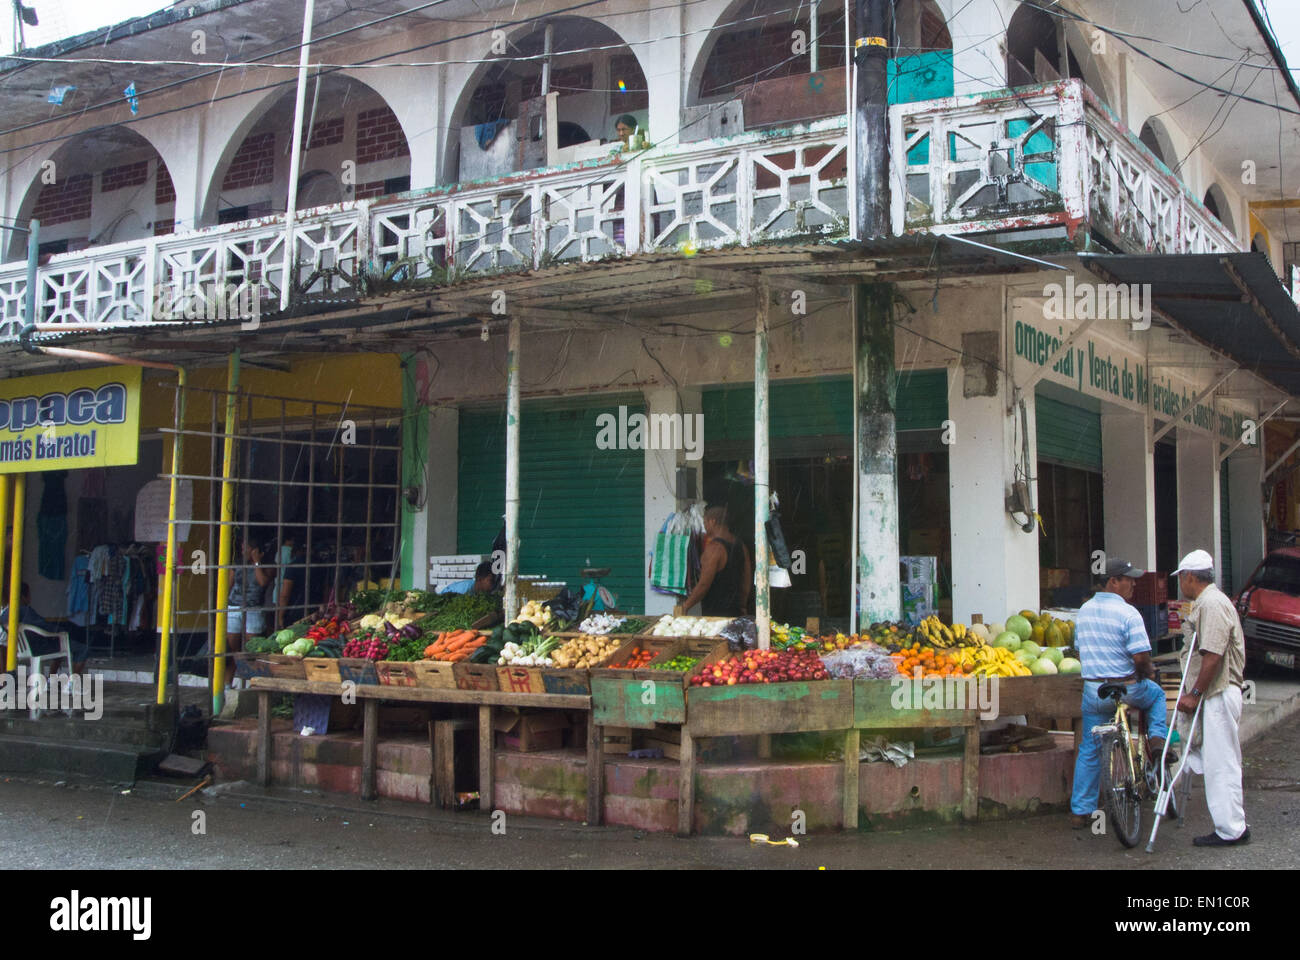 Fruit and vegetables in Livingston, Guatemala Stock Photo